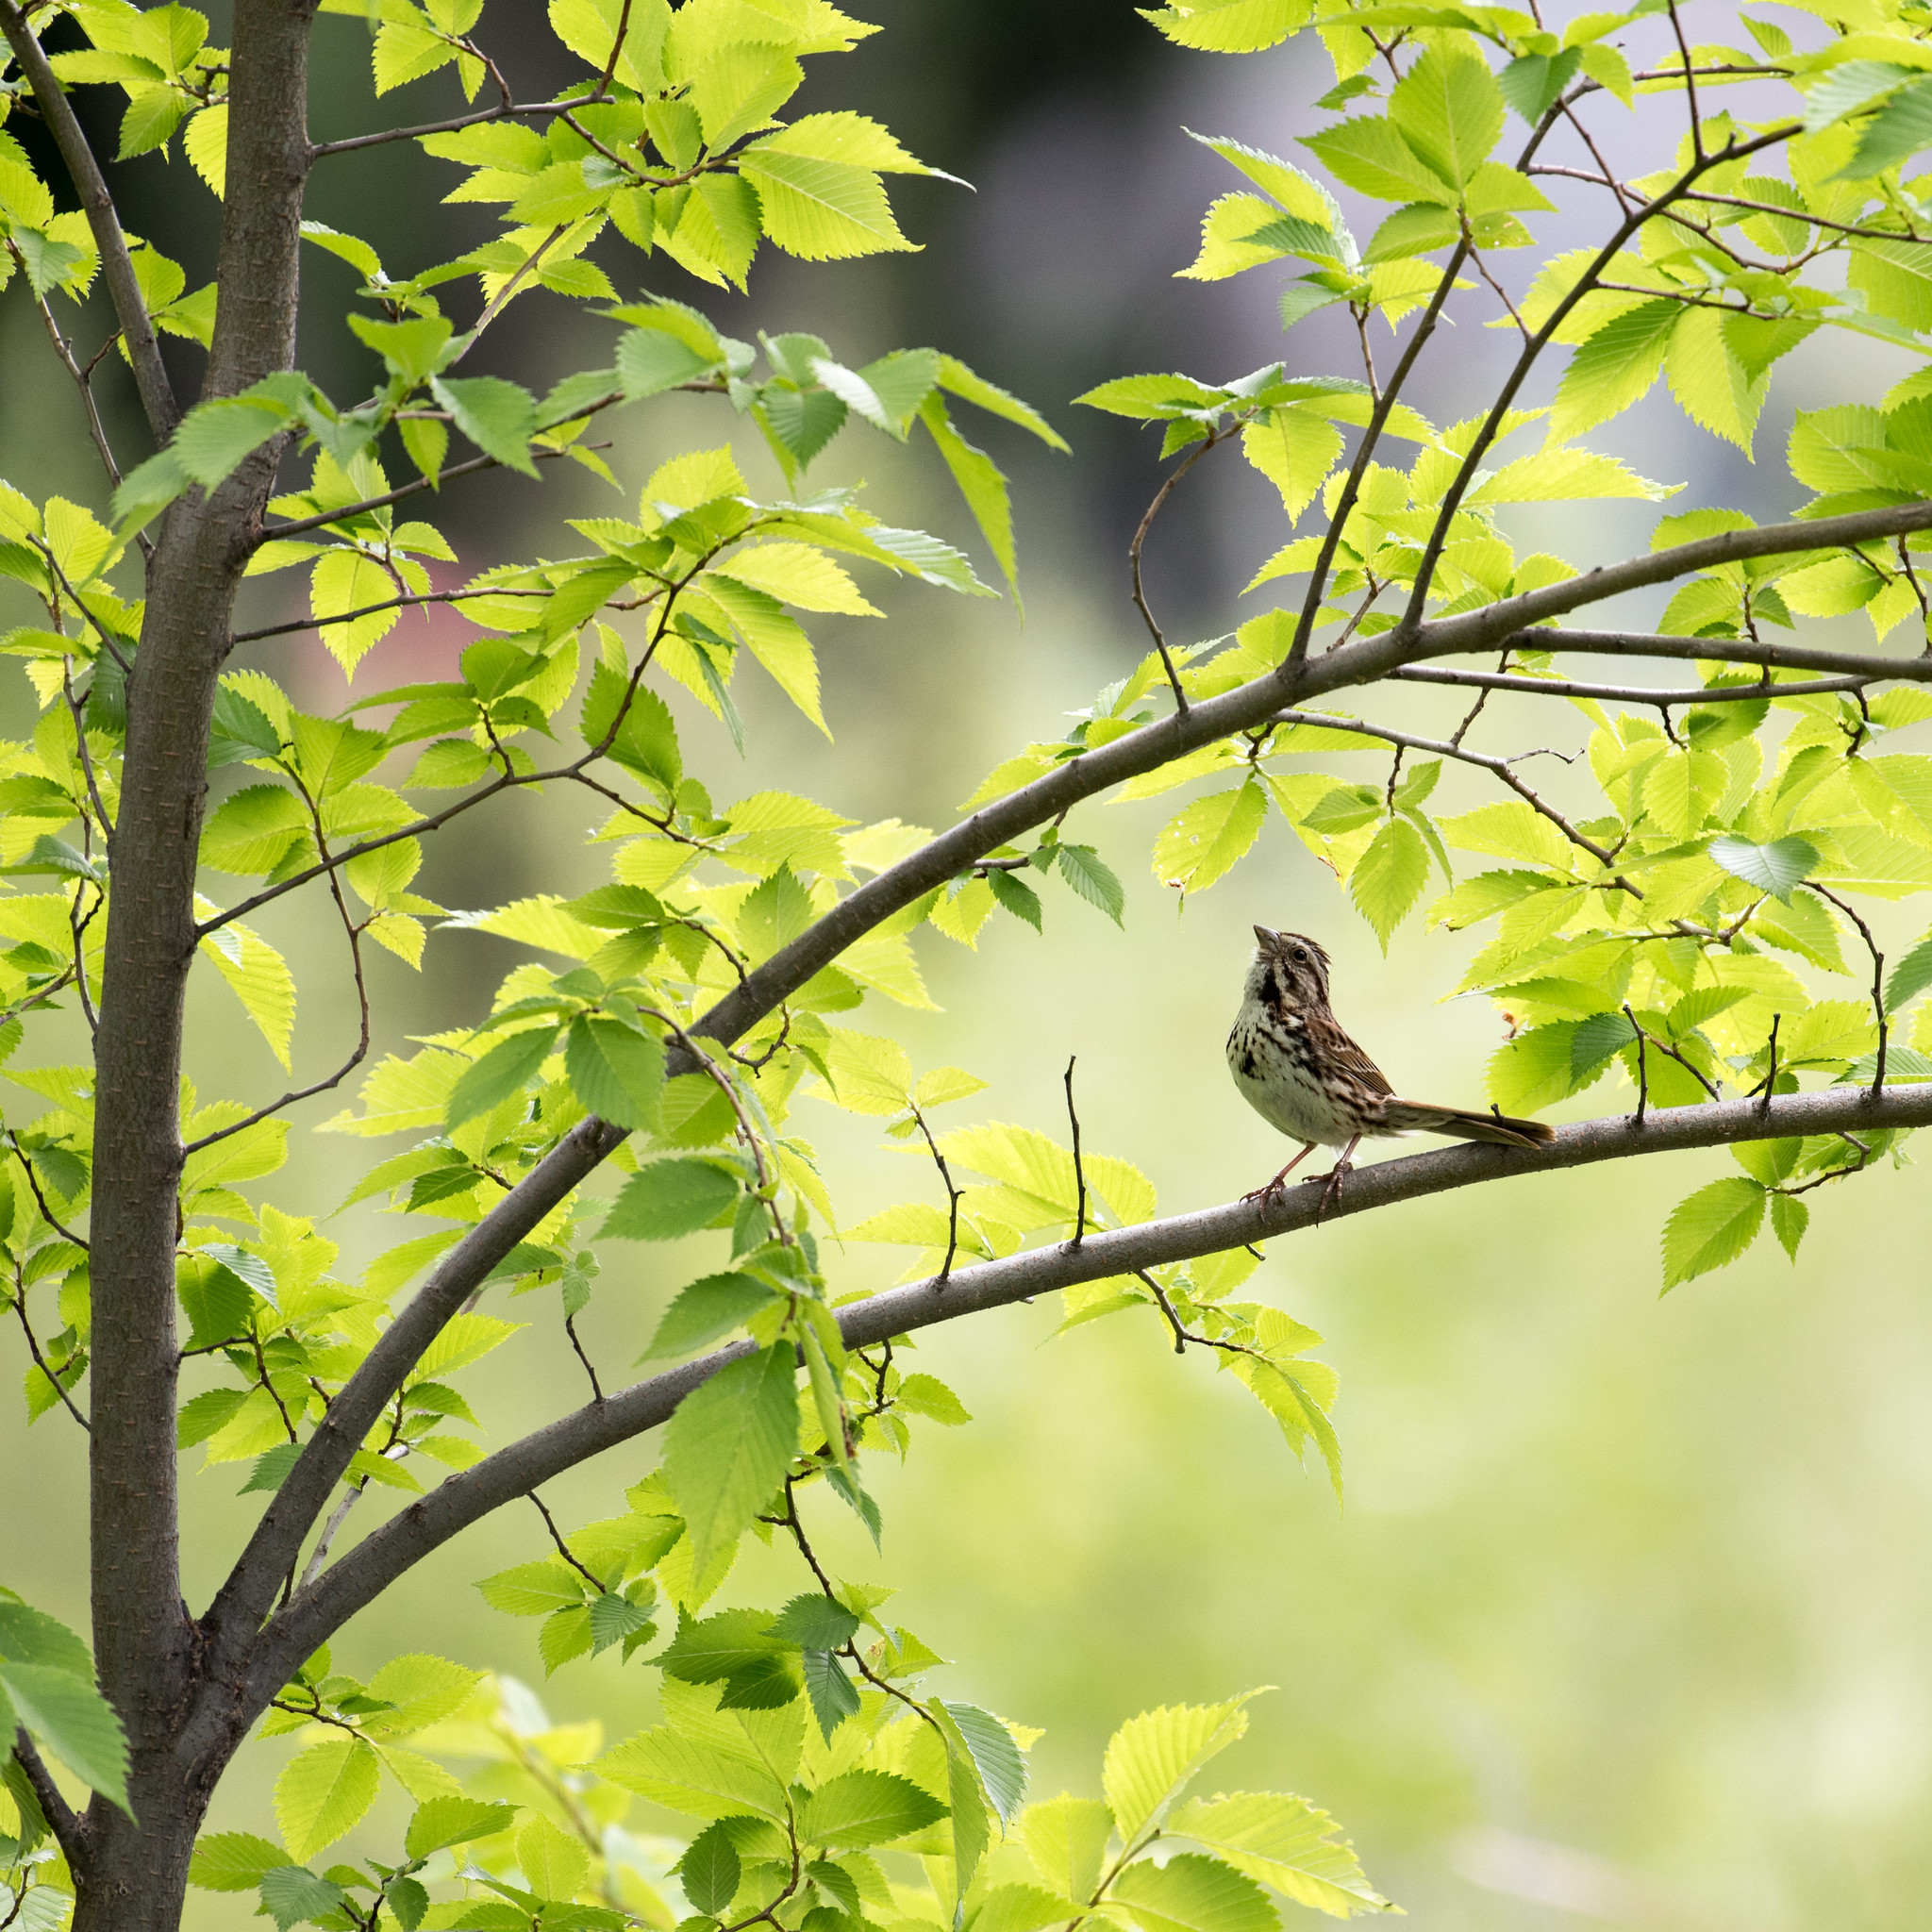 121478 free wallpaper 540x960 for phone, download images Animals, Leaves, Bird, Sparrow, Branch 540x960 for mobile